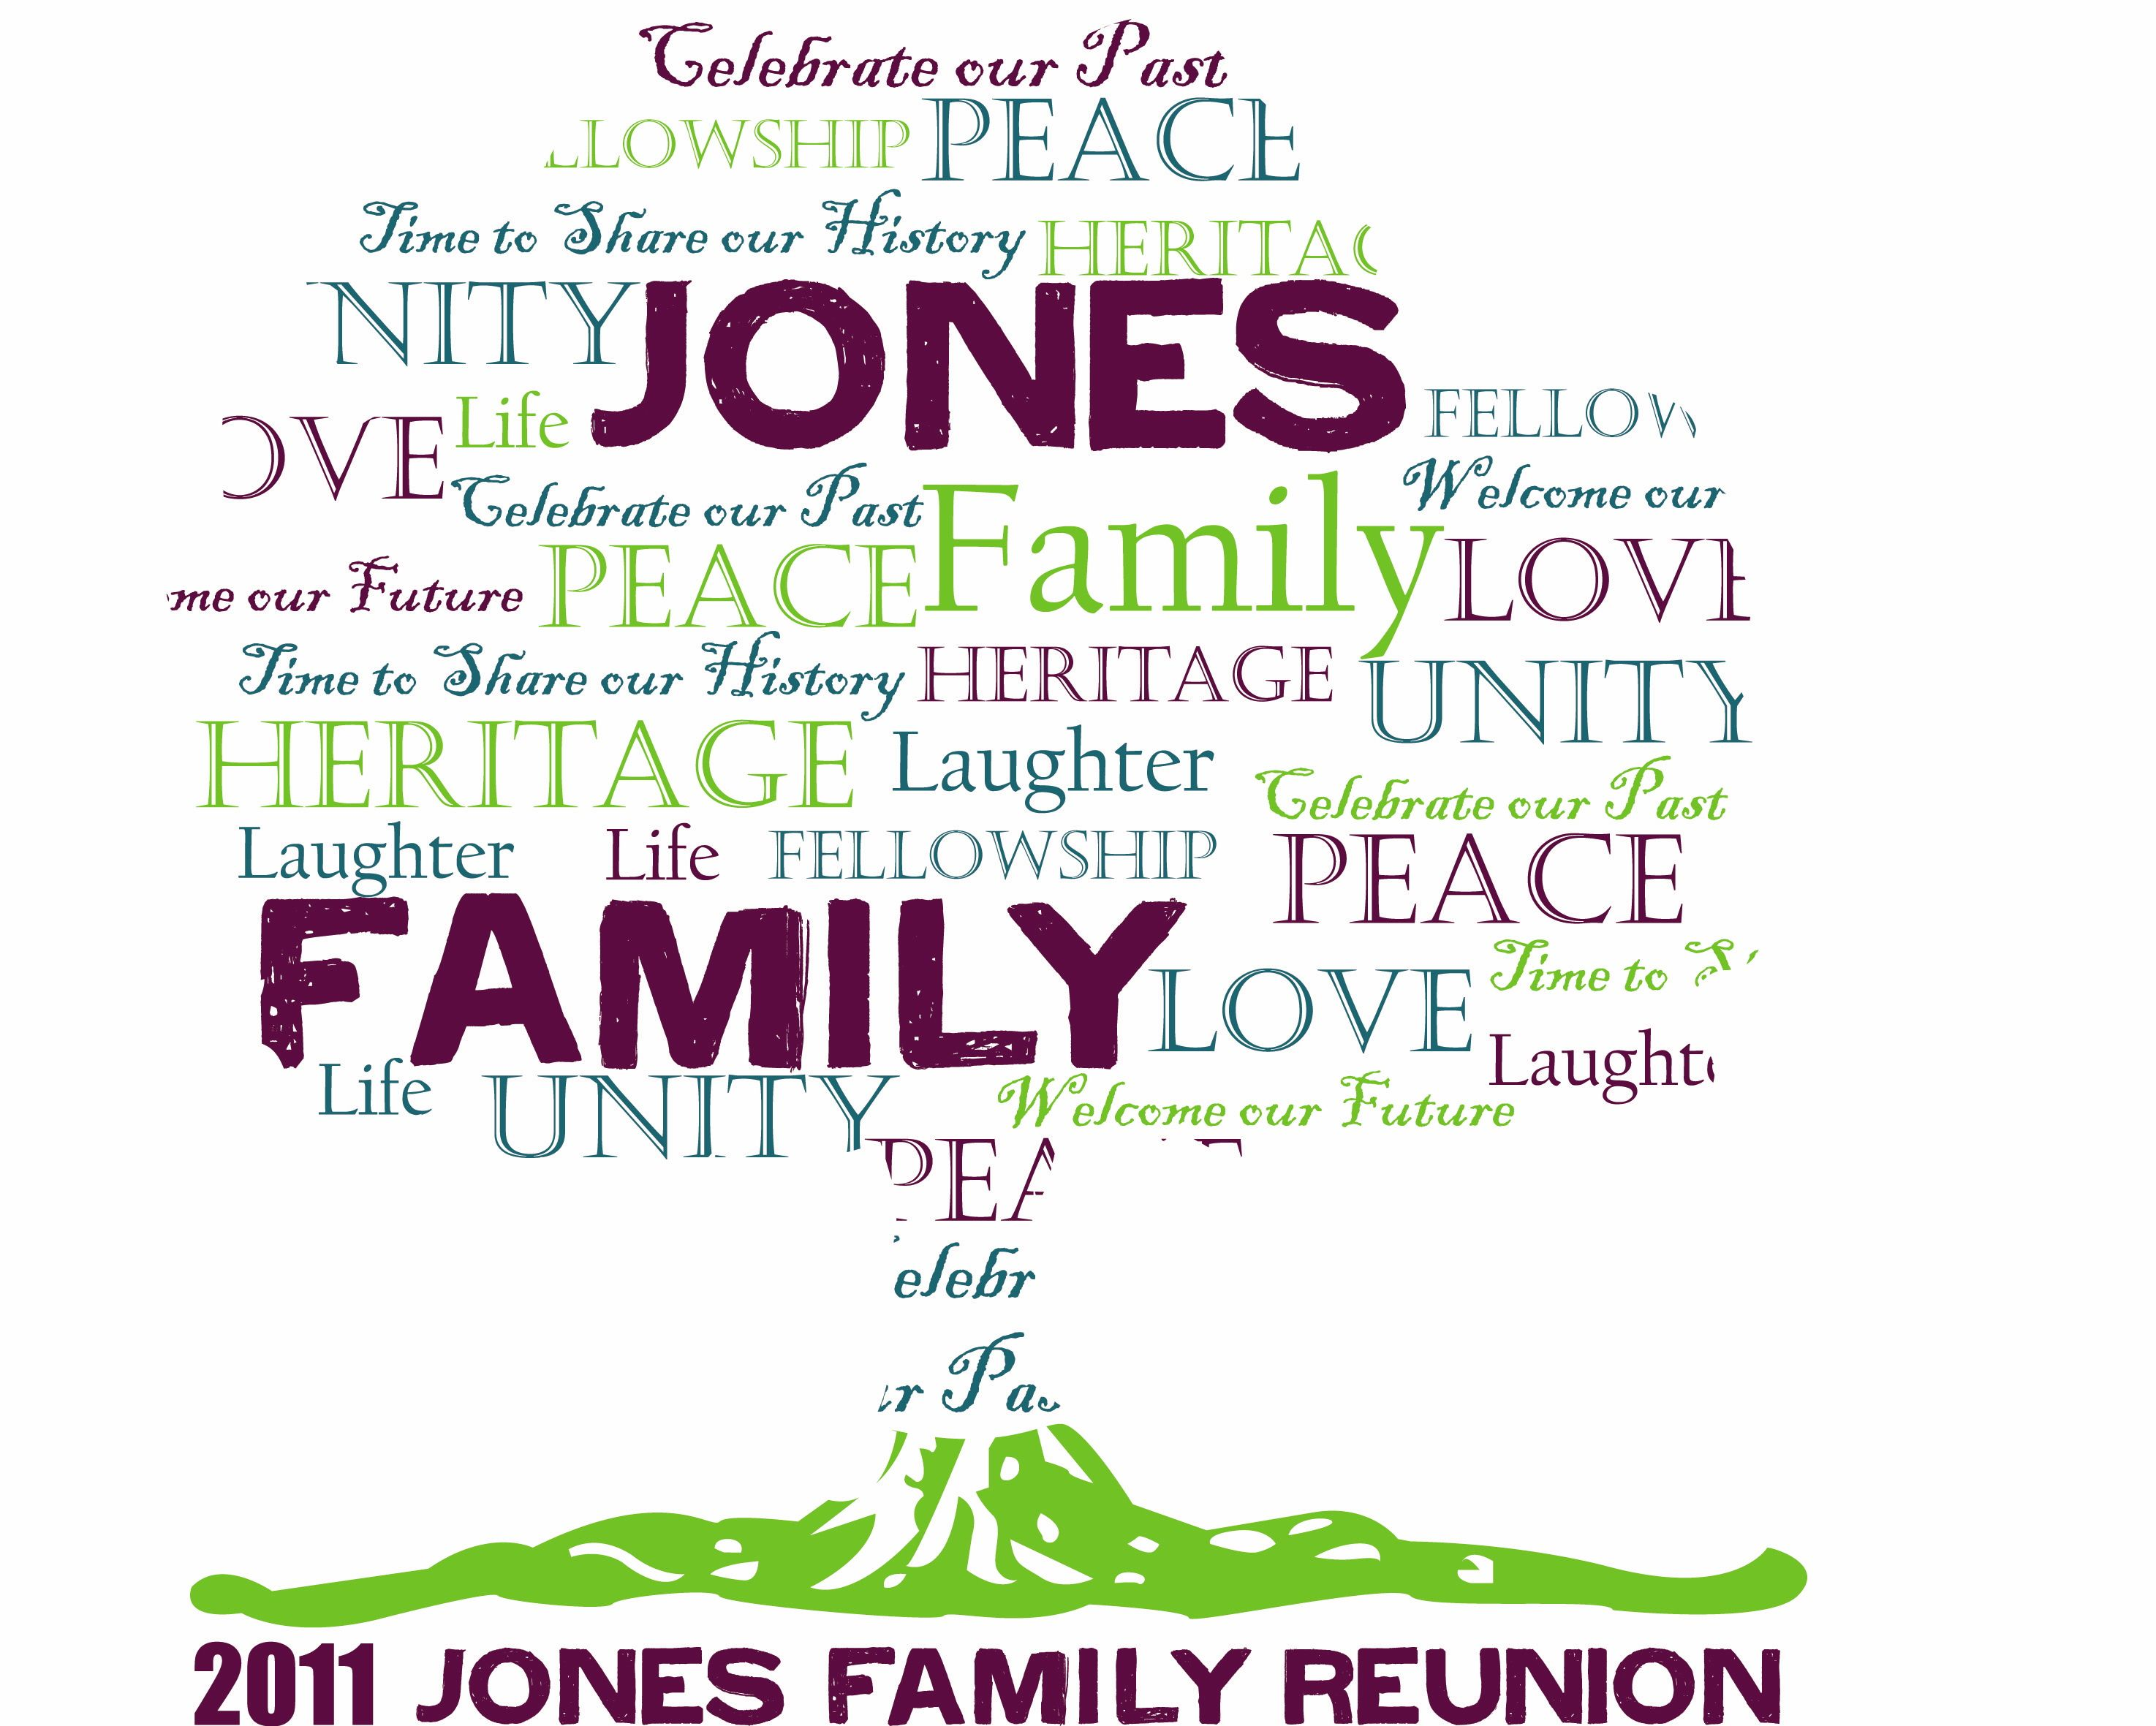 Family Reunion Shirt Design Ideas family reunion t shirt collegiate reunion desn 414c1 family reunion t shirt design ideas Family Reunion T Shirt Ideas Family Reunion Logo Was Used